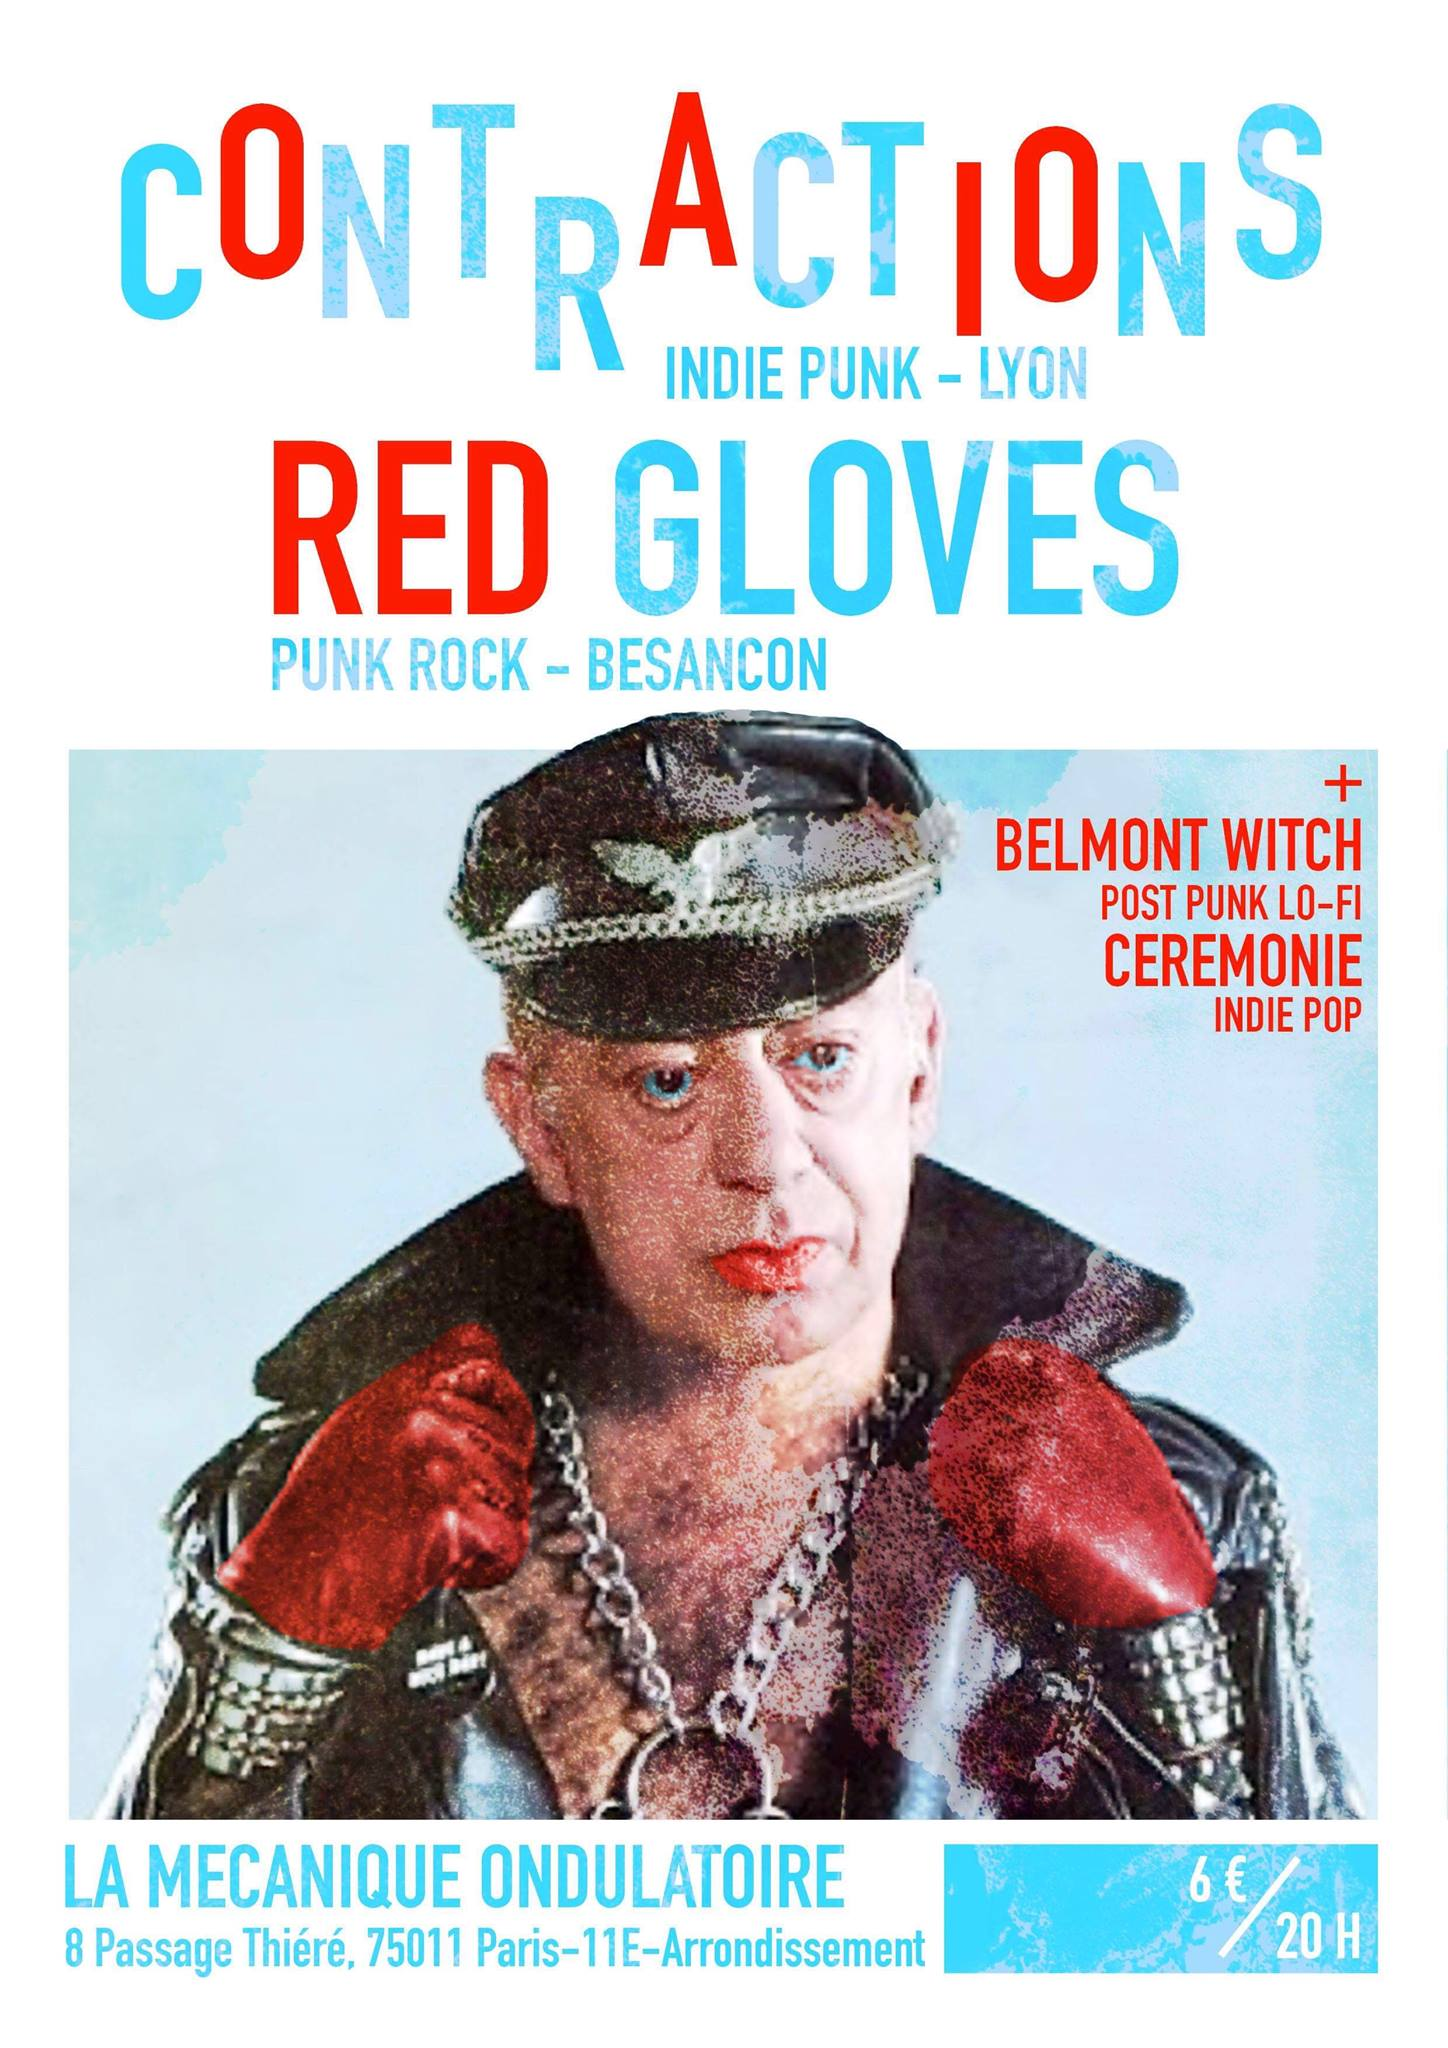 CONTRACTIONS + RED GLOVES // 16.12